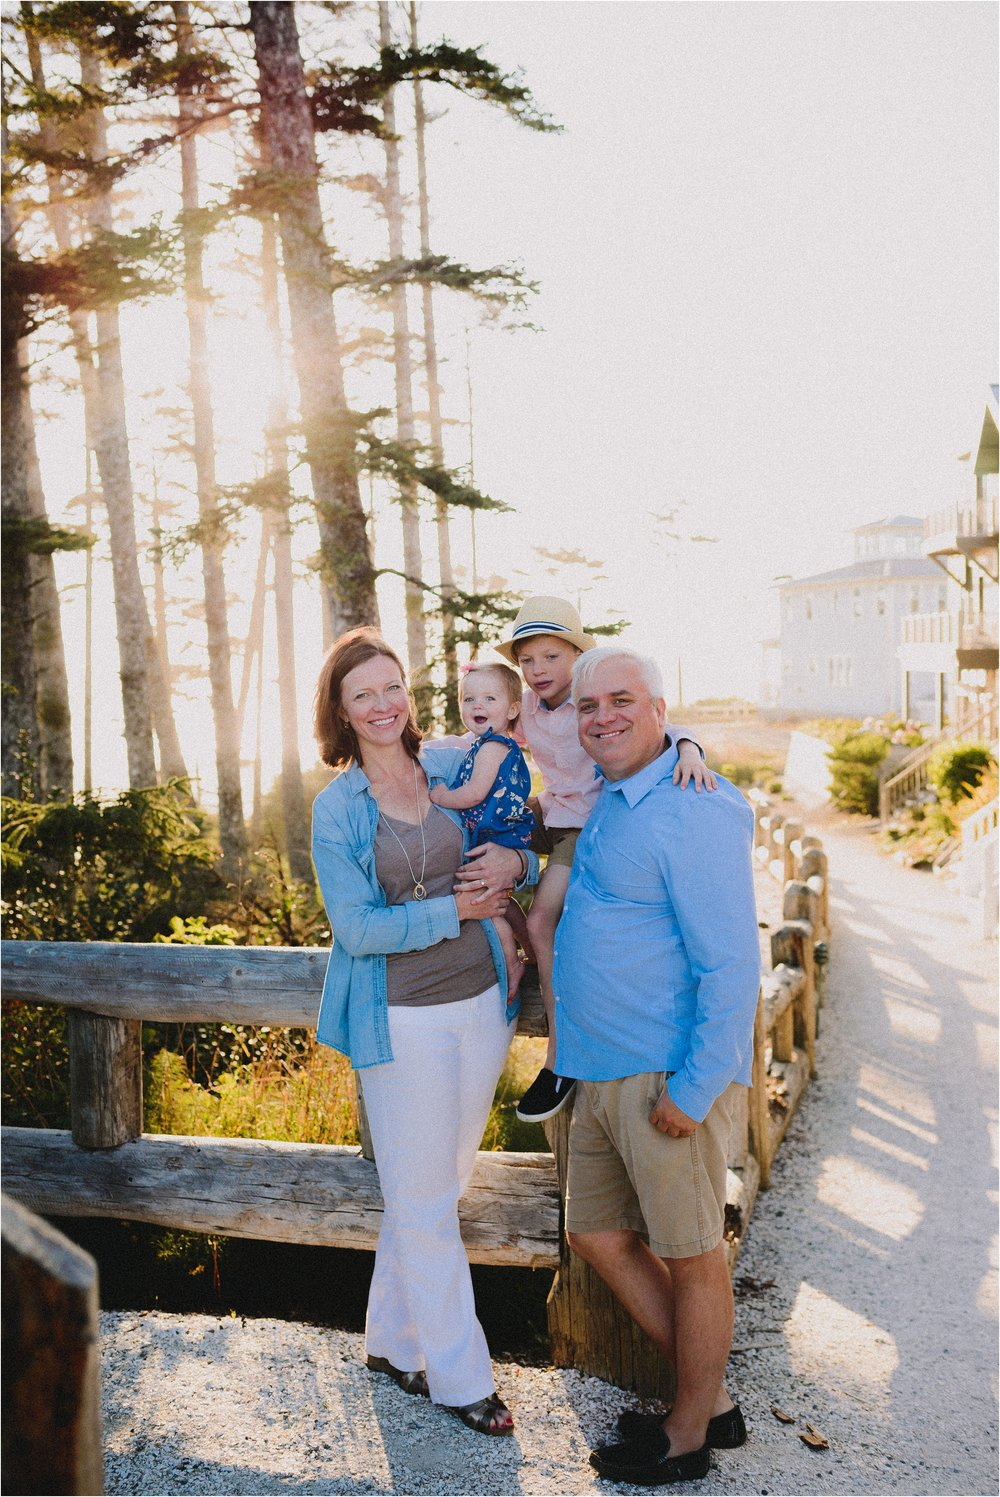 pacific-beach-washington-family-session-jannicka-mayte-anchorage-alaska-family-photographer_0014.jpg